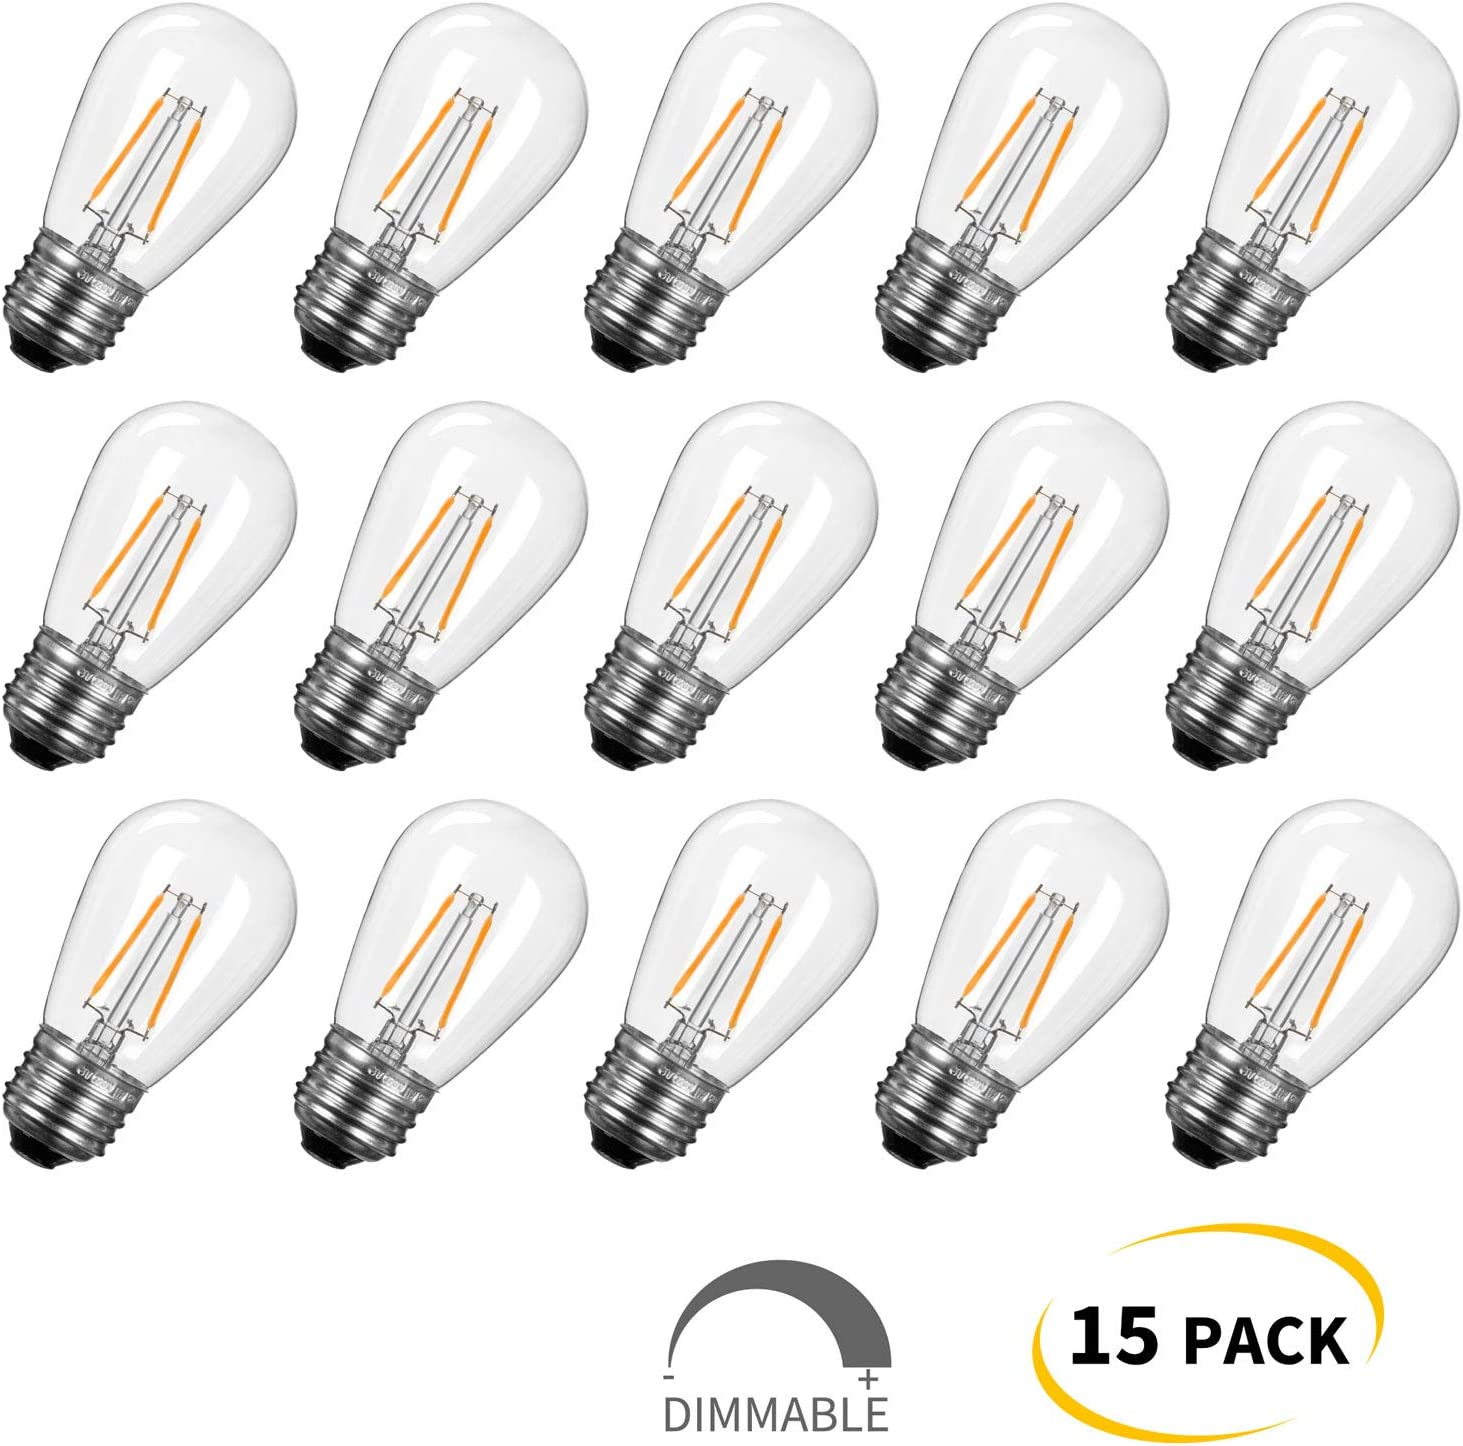 15-Pack Shatterproof LED S14 Replacement Light Bulbs-E26 E27 Medium Candelabra Screw Base Edison Bulbs Equivalent to 11 W, Fits for Commercial Outdoor Patio Garden Vintage Lights, Warm White